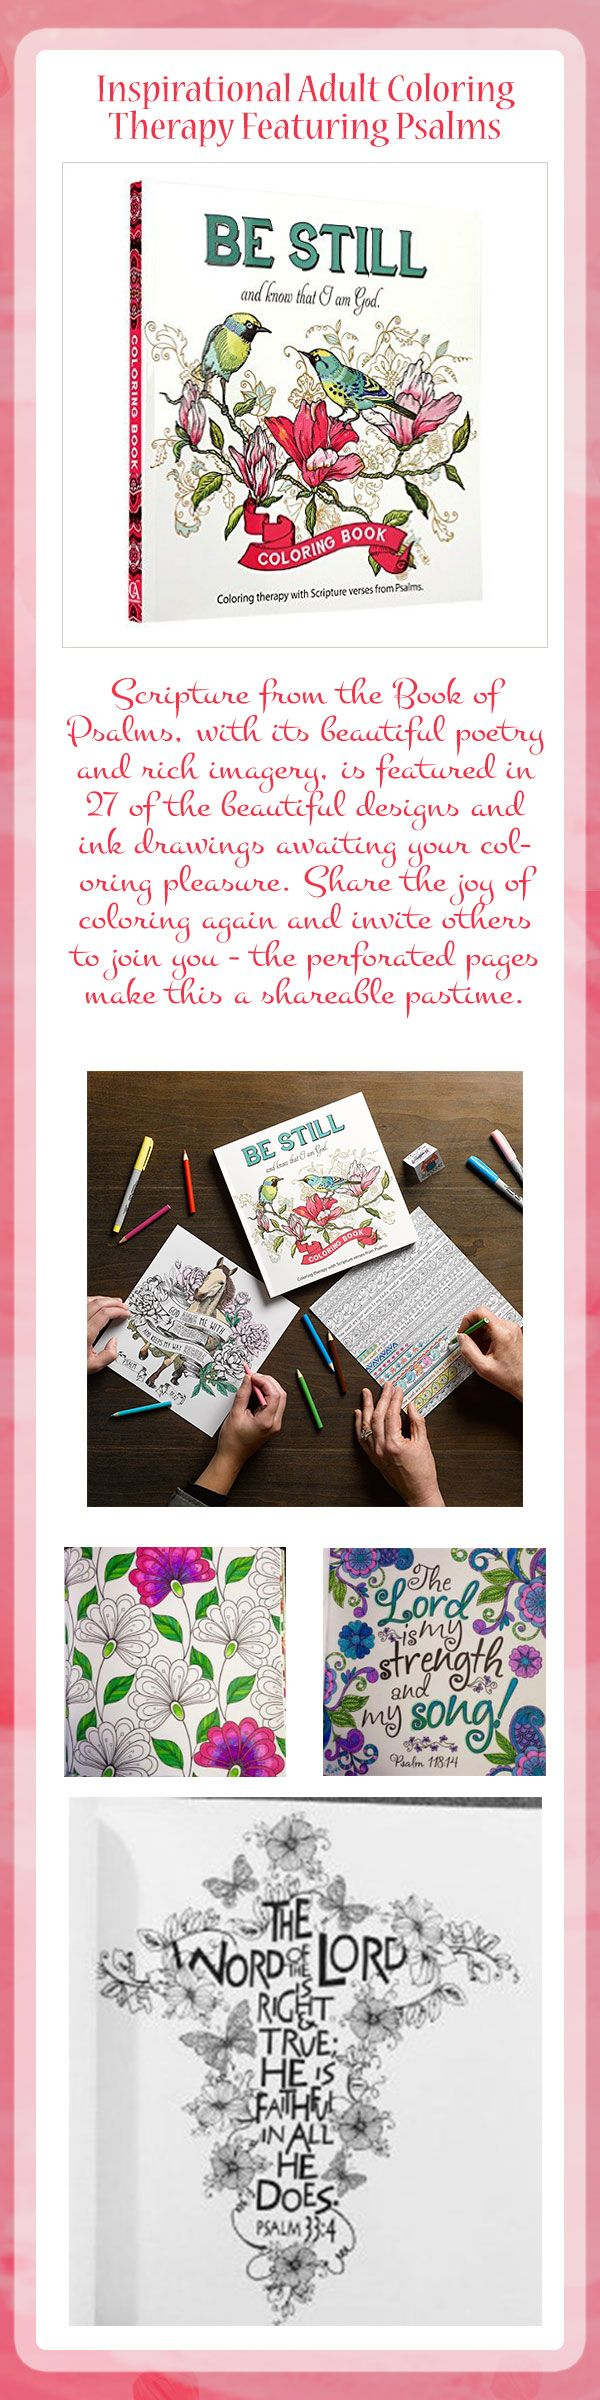 100 free coloring books by mail coloring books for adults 8 - Free Coloring Books By Mail